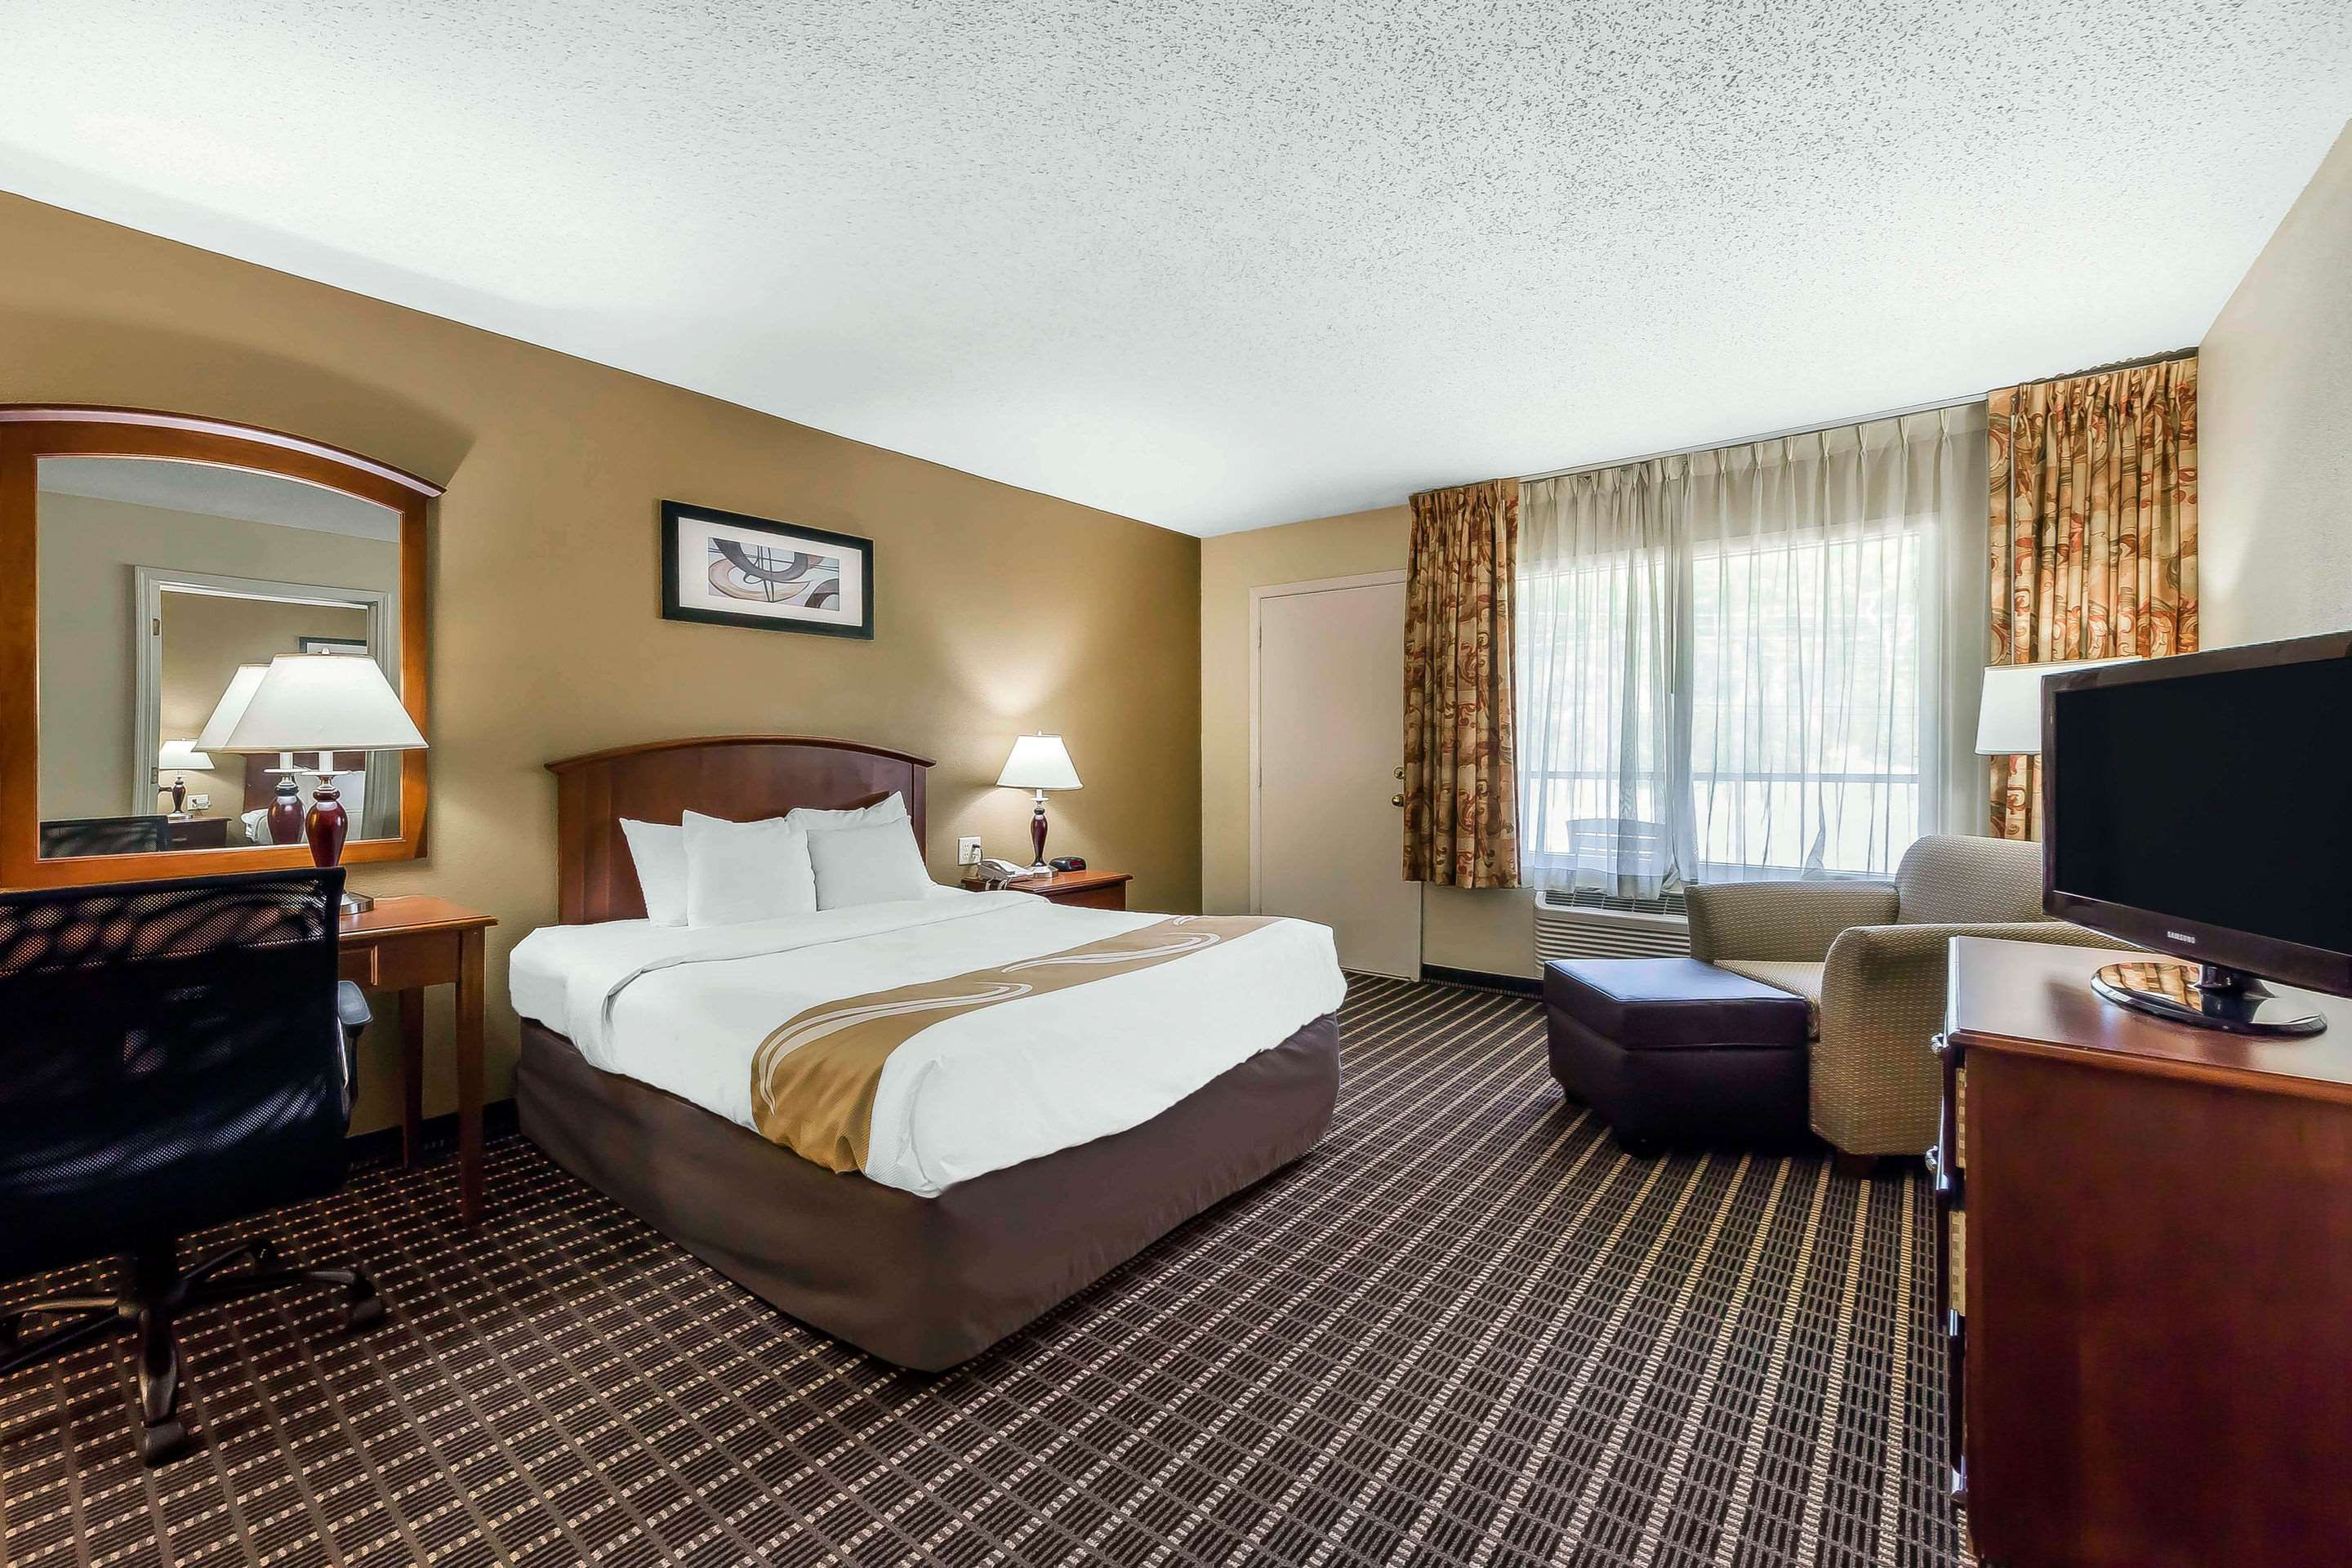 Quality Inn & Suites Sevierville - Pigeon Forge